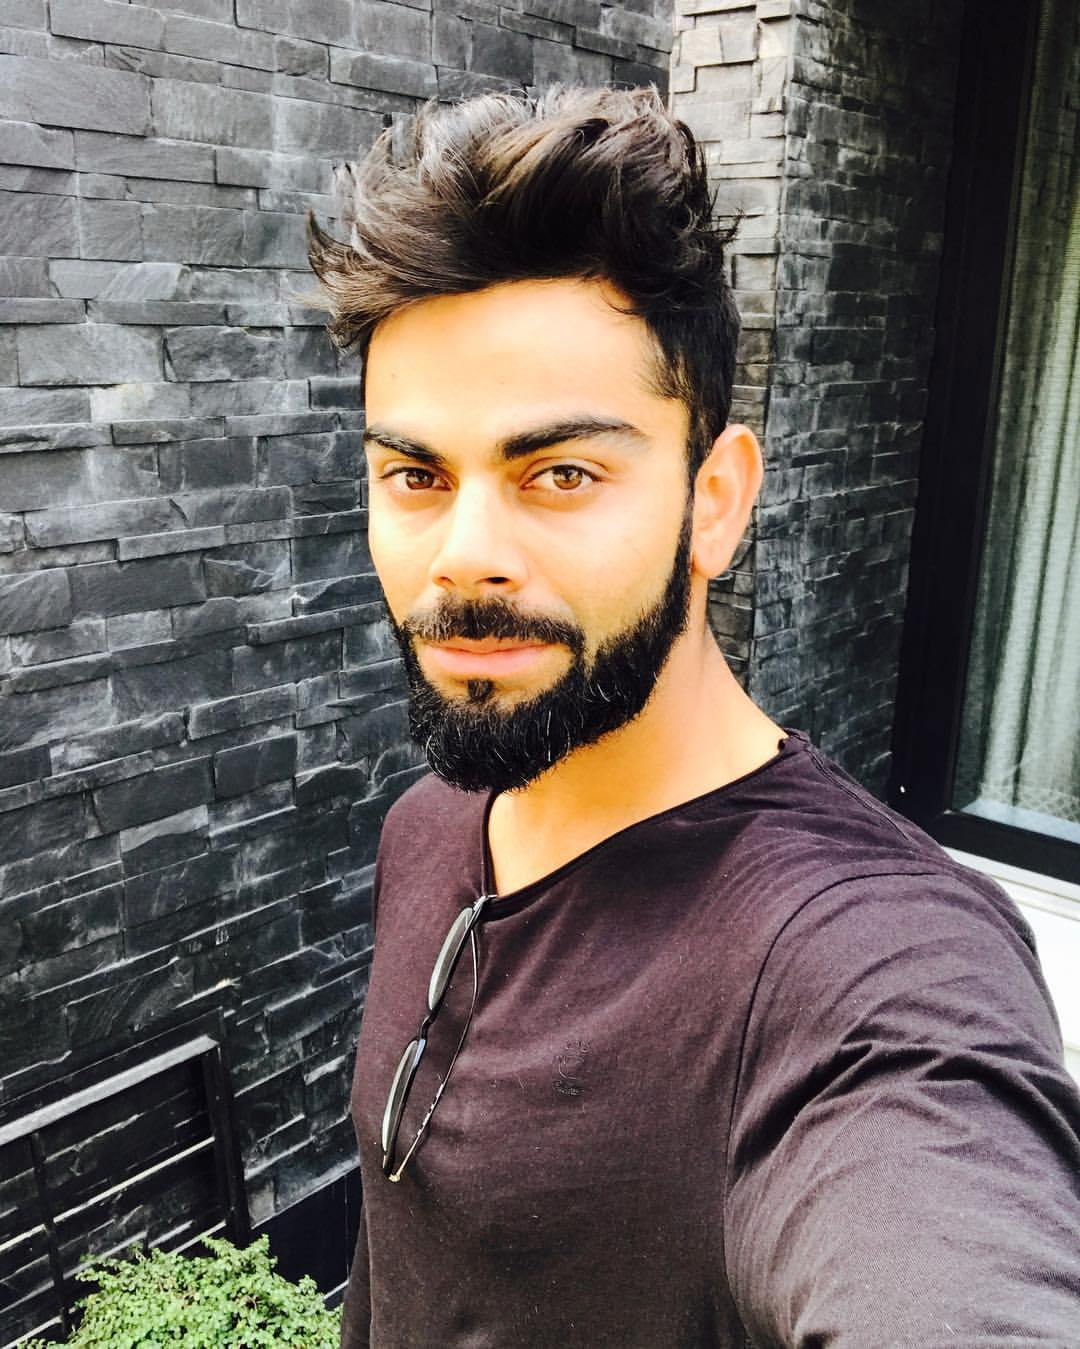 Virat Kohli Workout Bio And Physique Weight Loss Tips